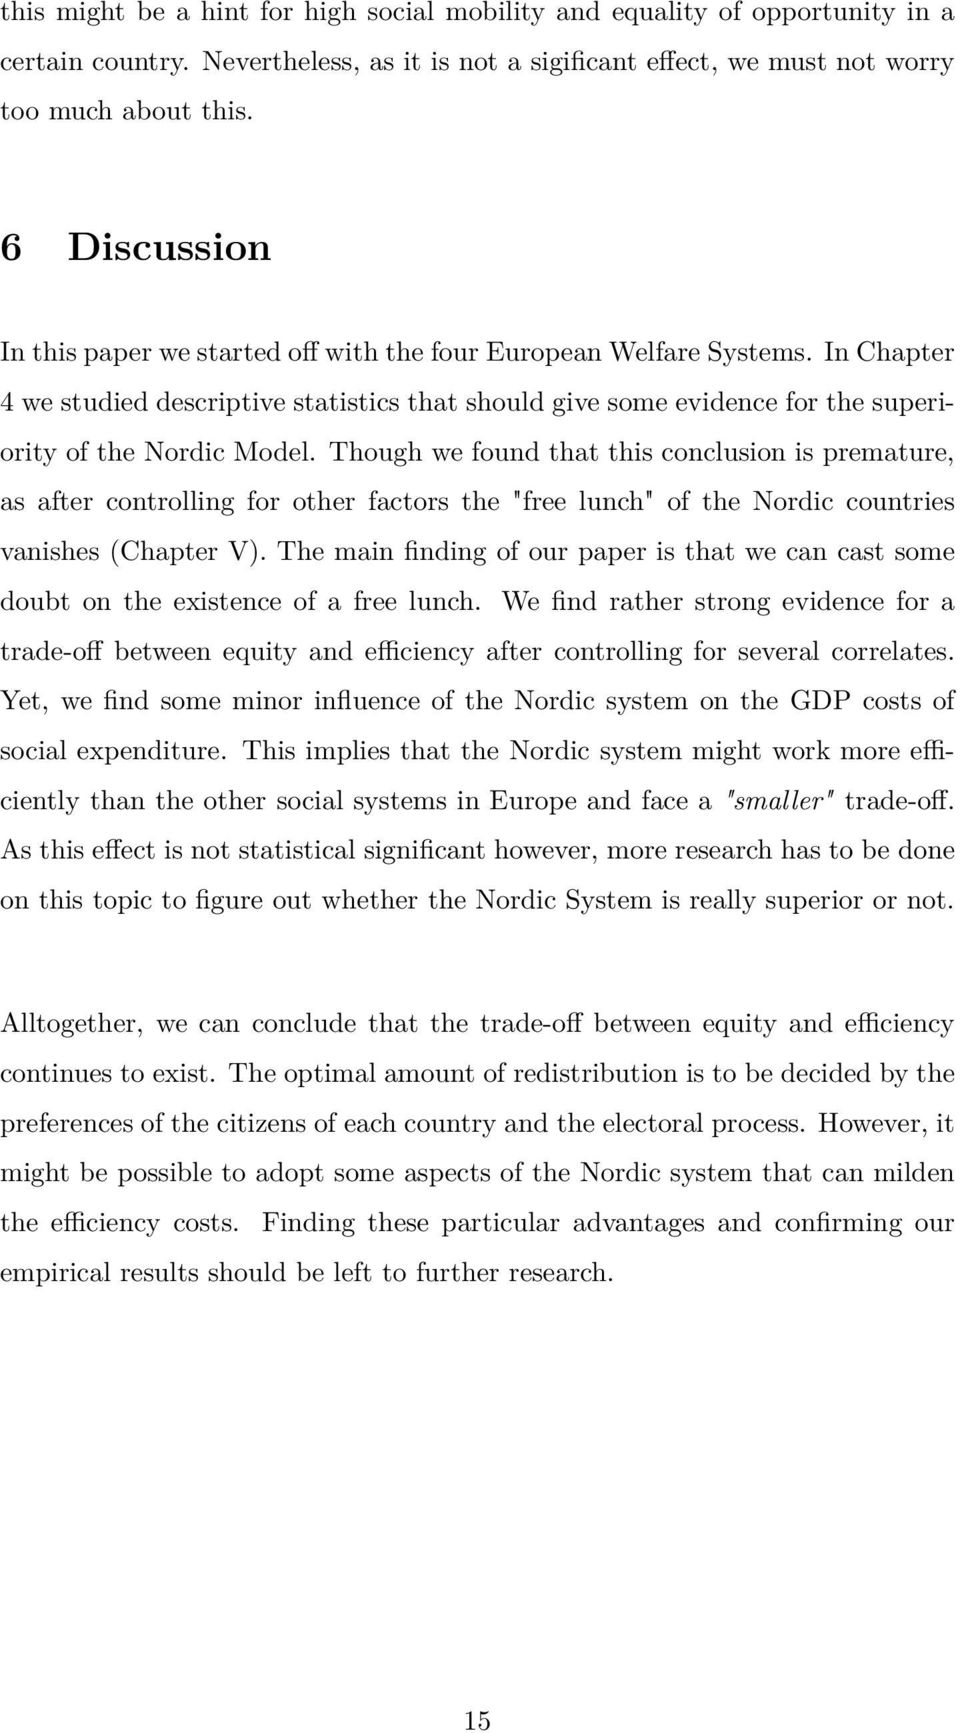 "Though we found that this conclusion is premature, as after controlling for other factors the ""free lunch"" of the Nordic countries vanishes (Chapter V)."